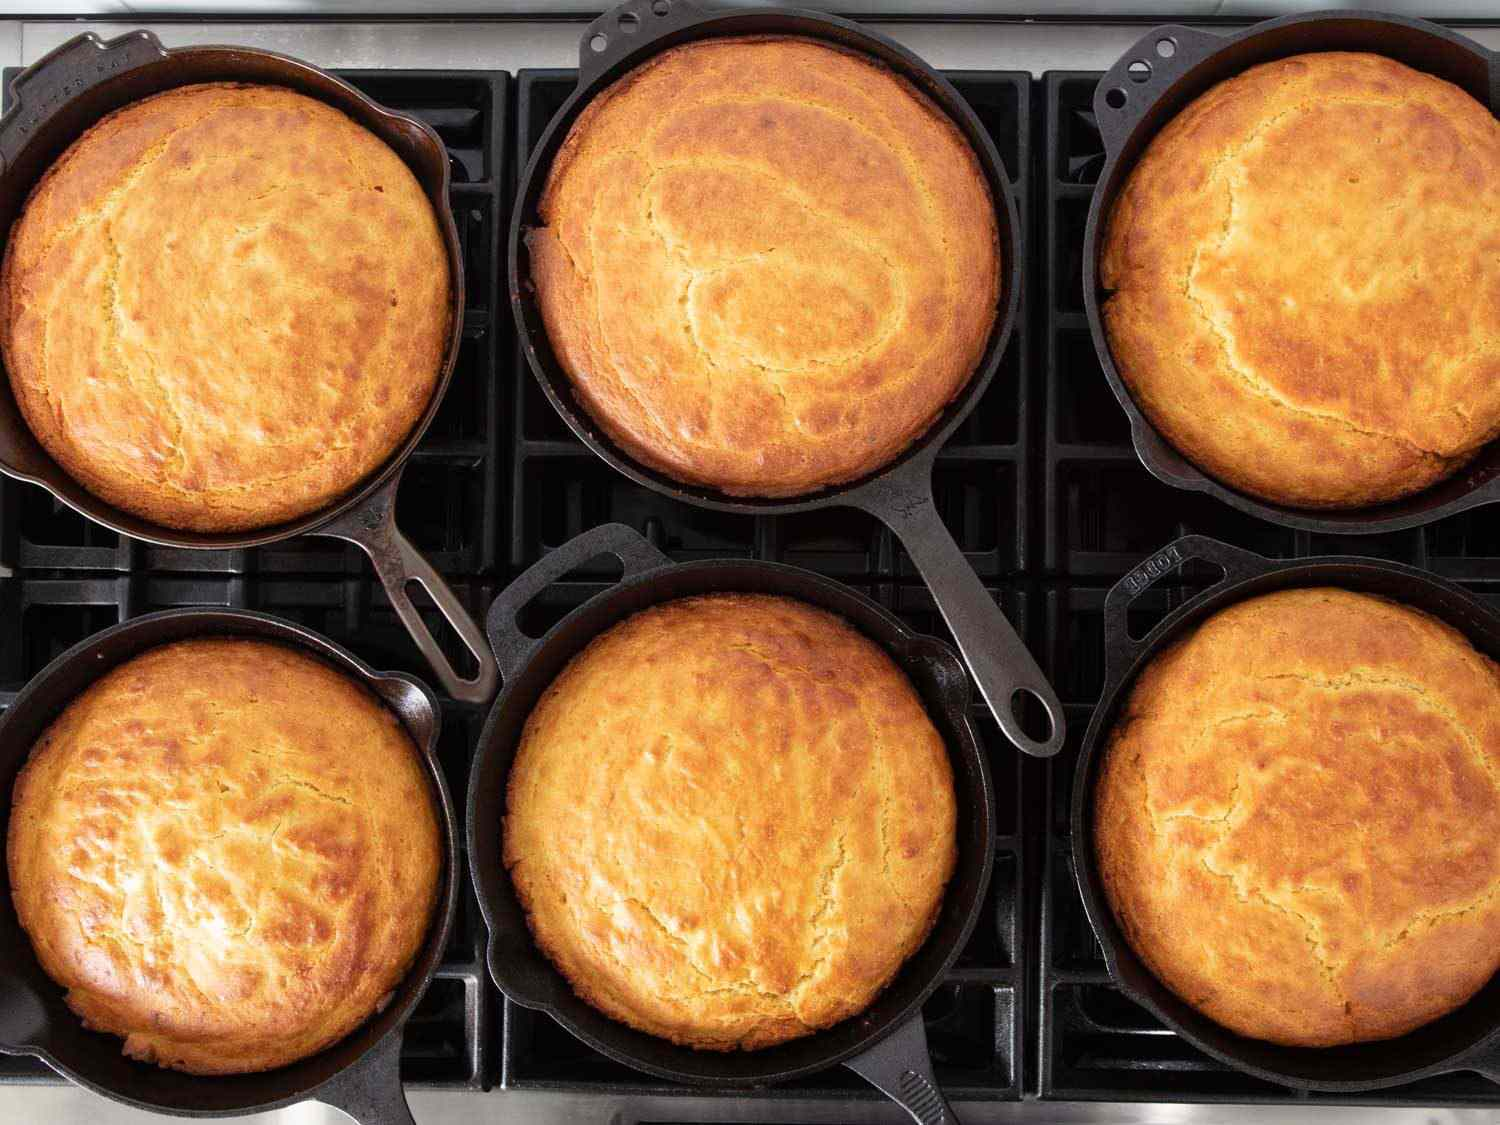 An overhead shot of several cast iron skillets, each containing golden brown cornbread; the differences from skillet to skillet were impossible to discern.